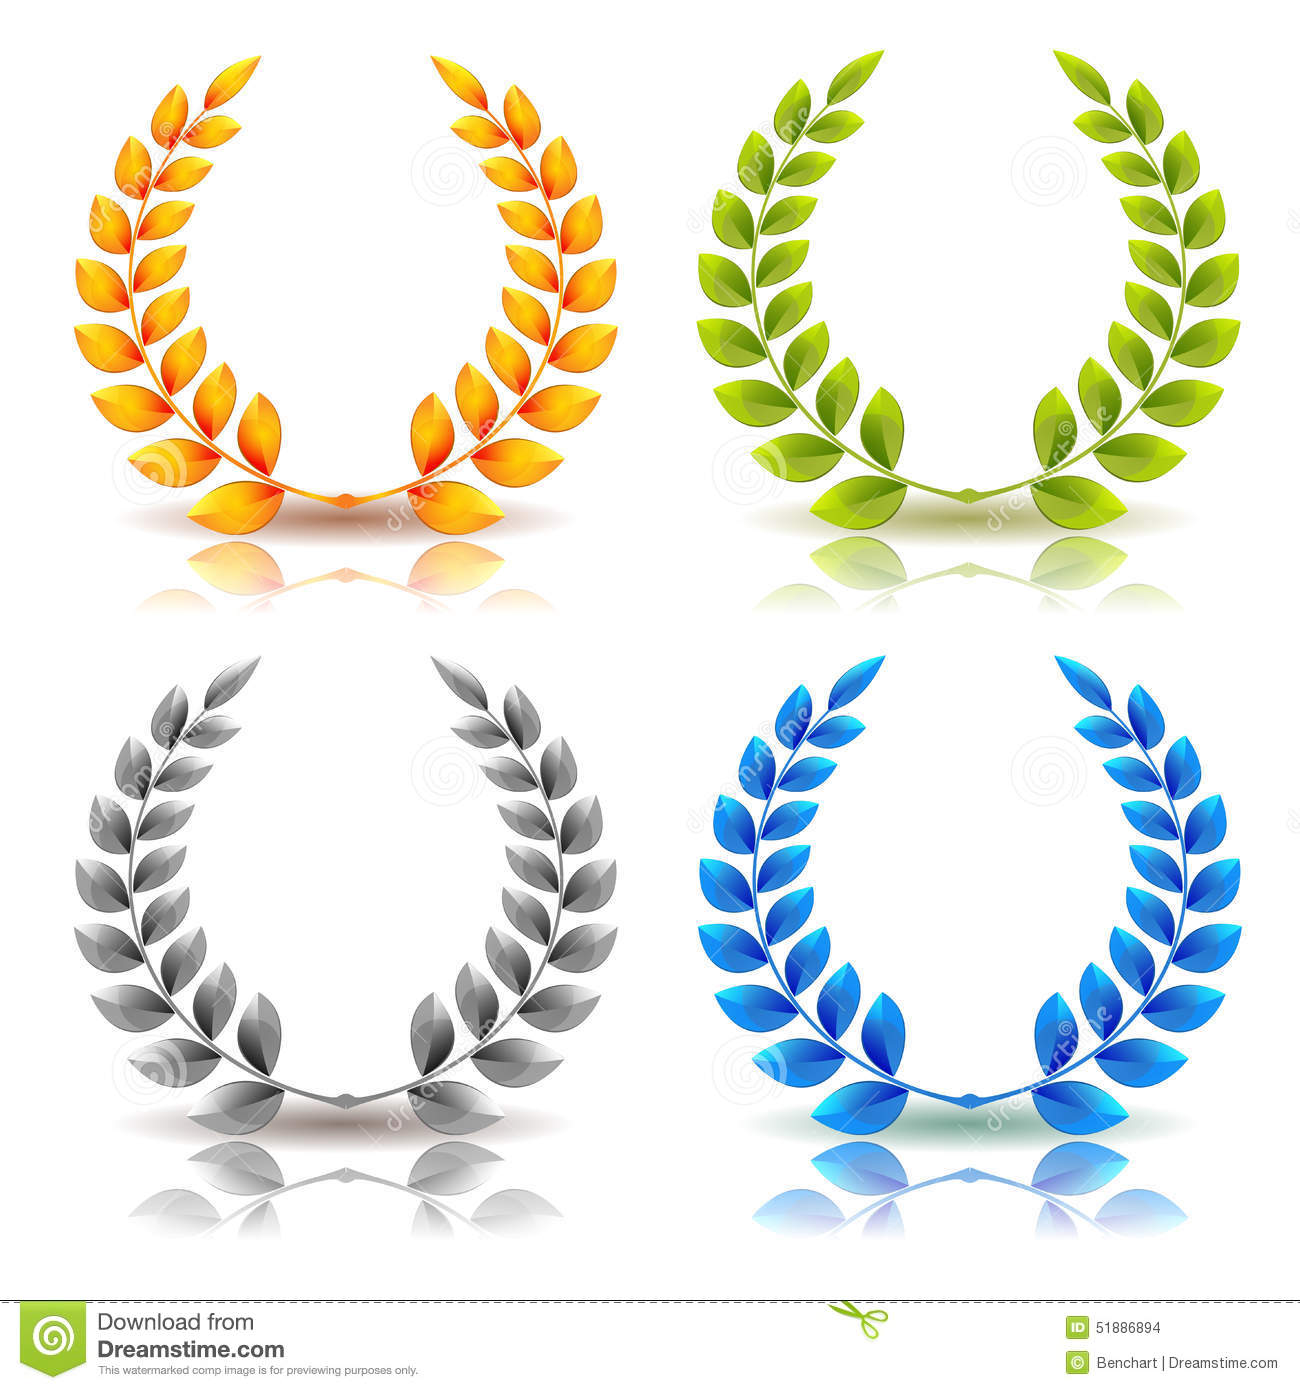 And leaves wreath set. Laurel clipart years service awards clip art black and white library